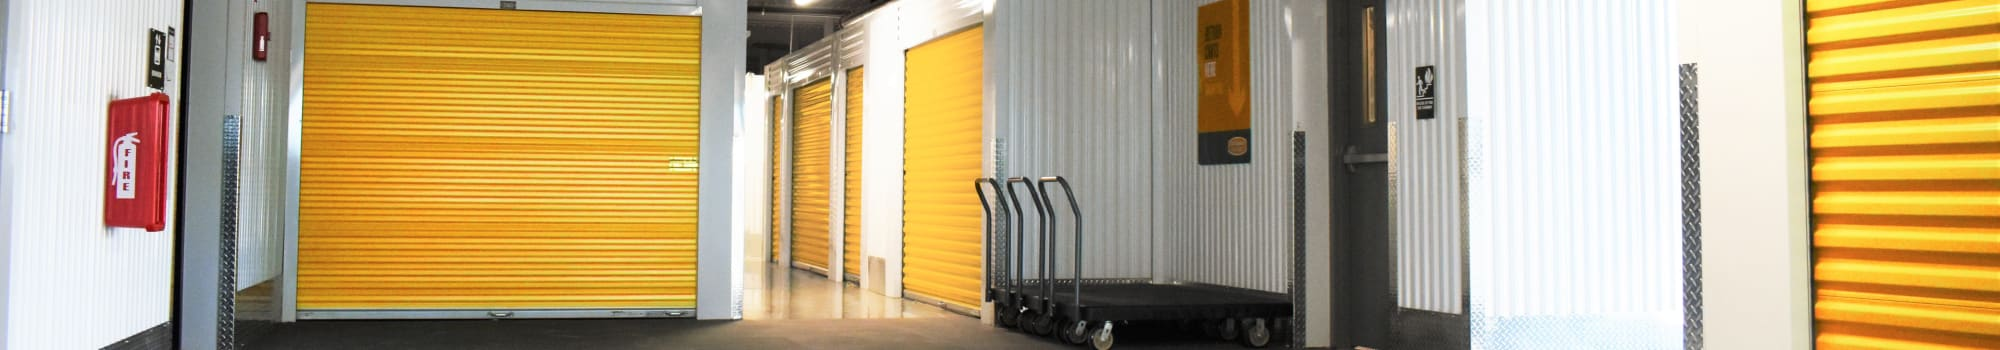 Features at Storage 365 in Garland, Texas